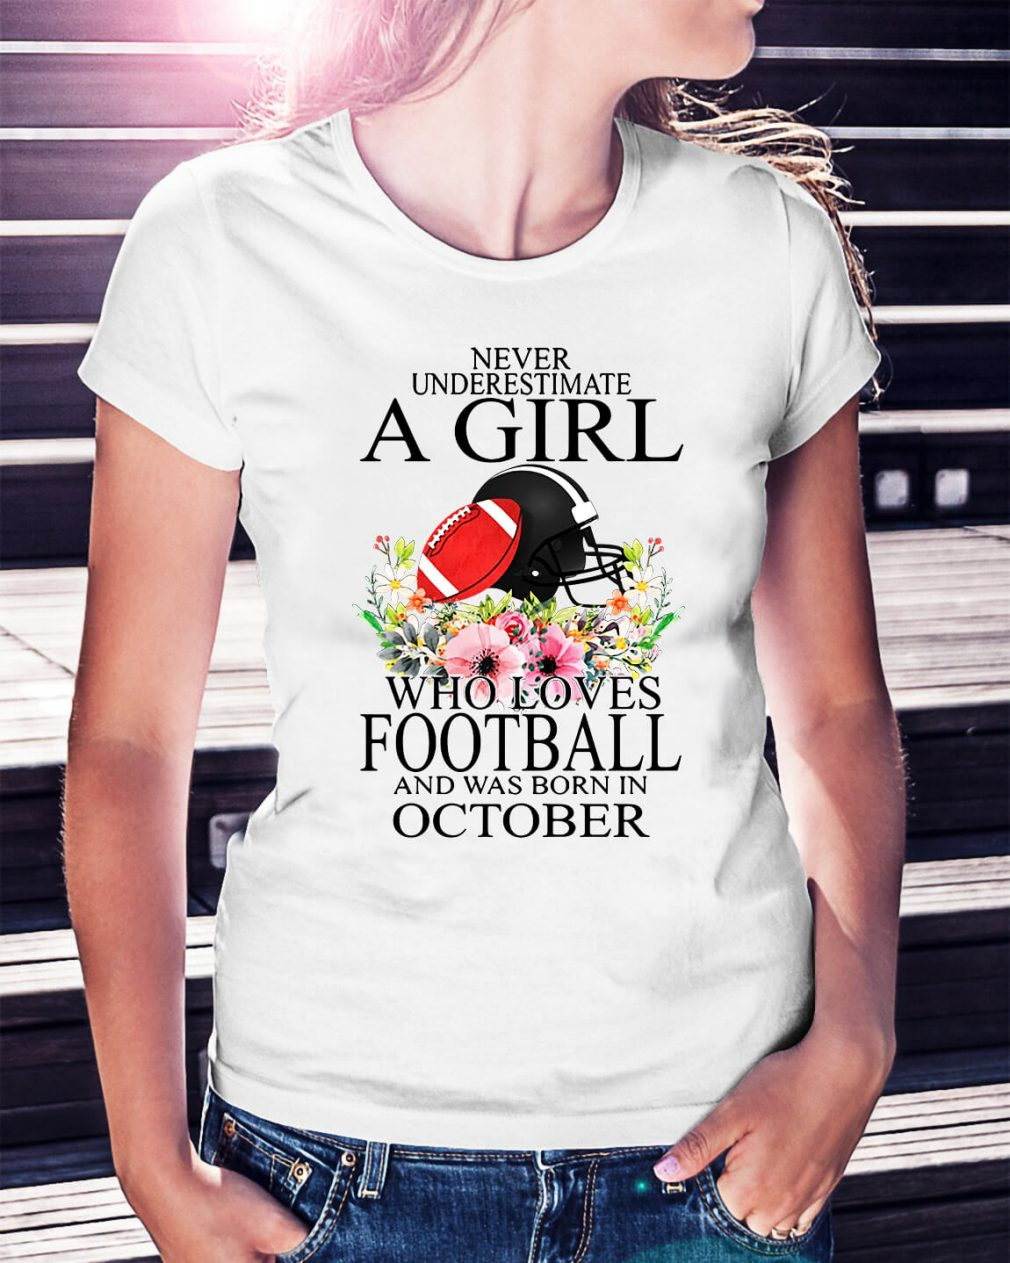 Never underestimate a girl who loves football and was born in October shirt